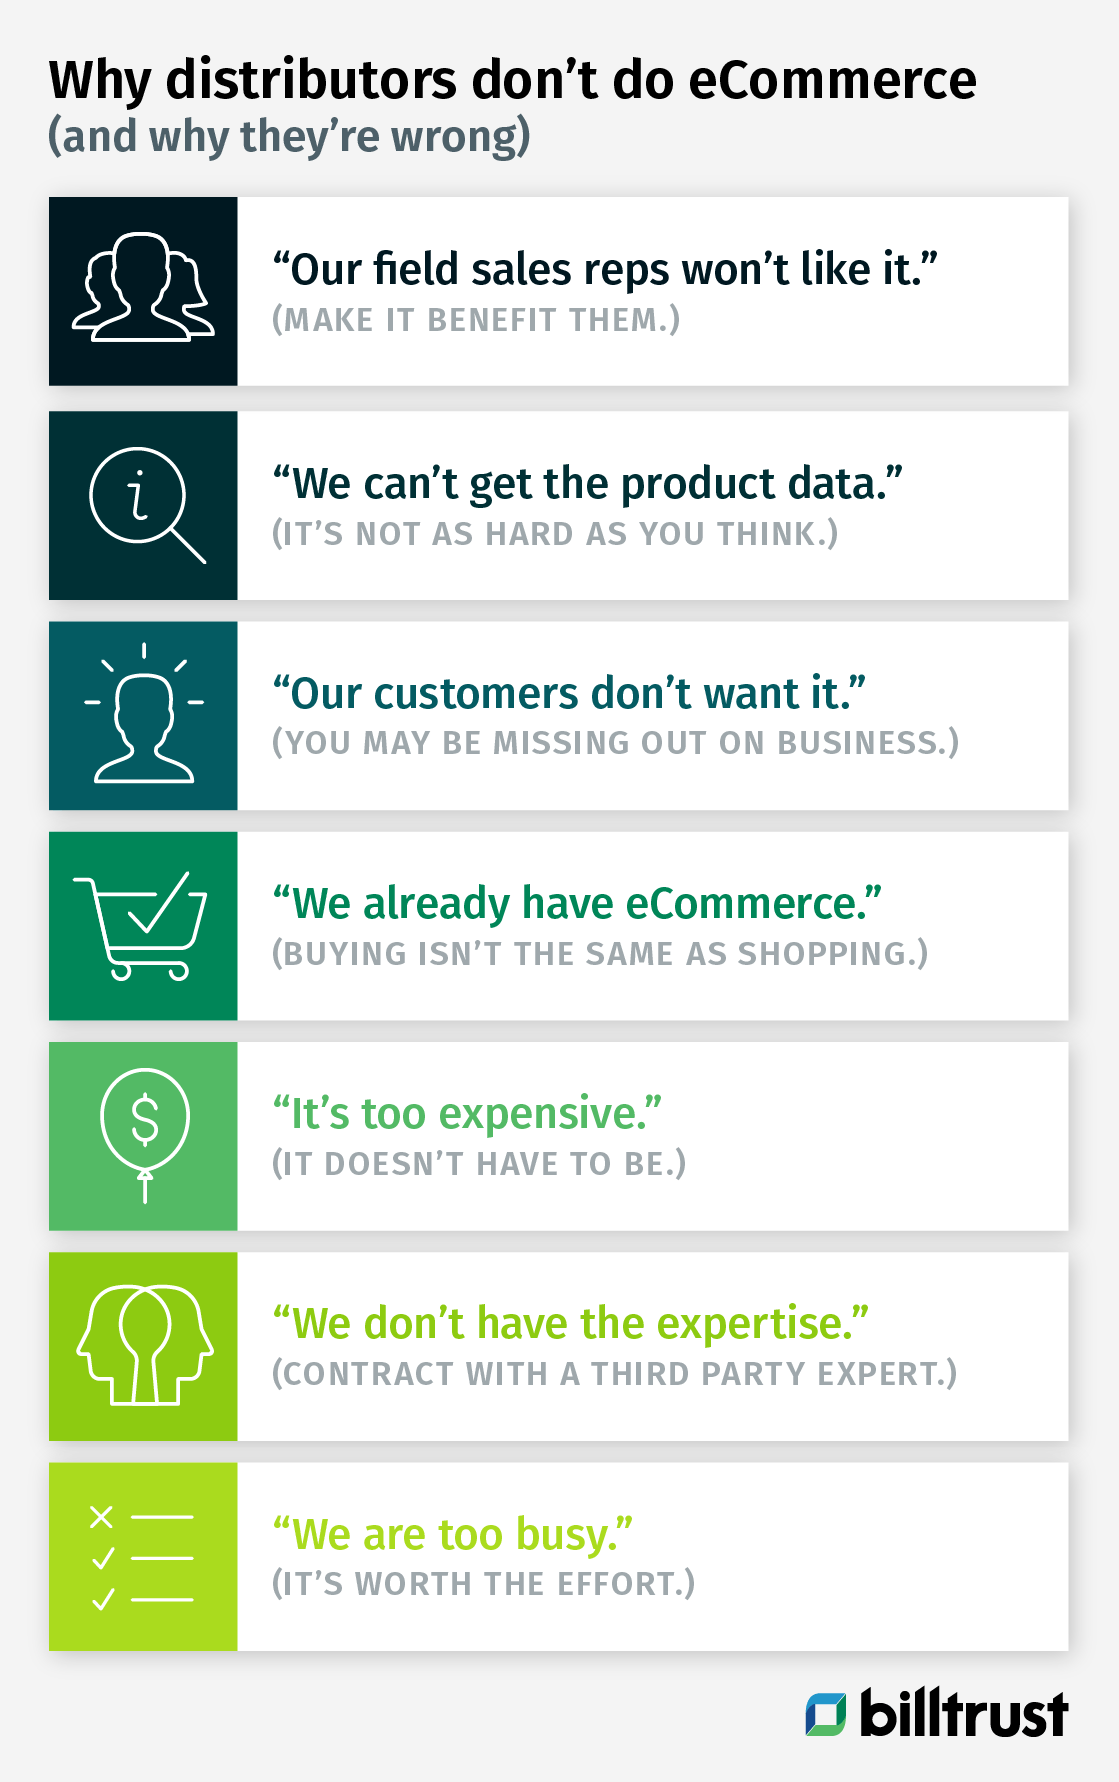 Why distributors don't do eCommerce (and why they're wrong) infographic